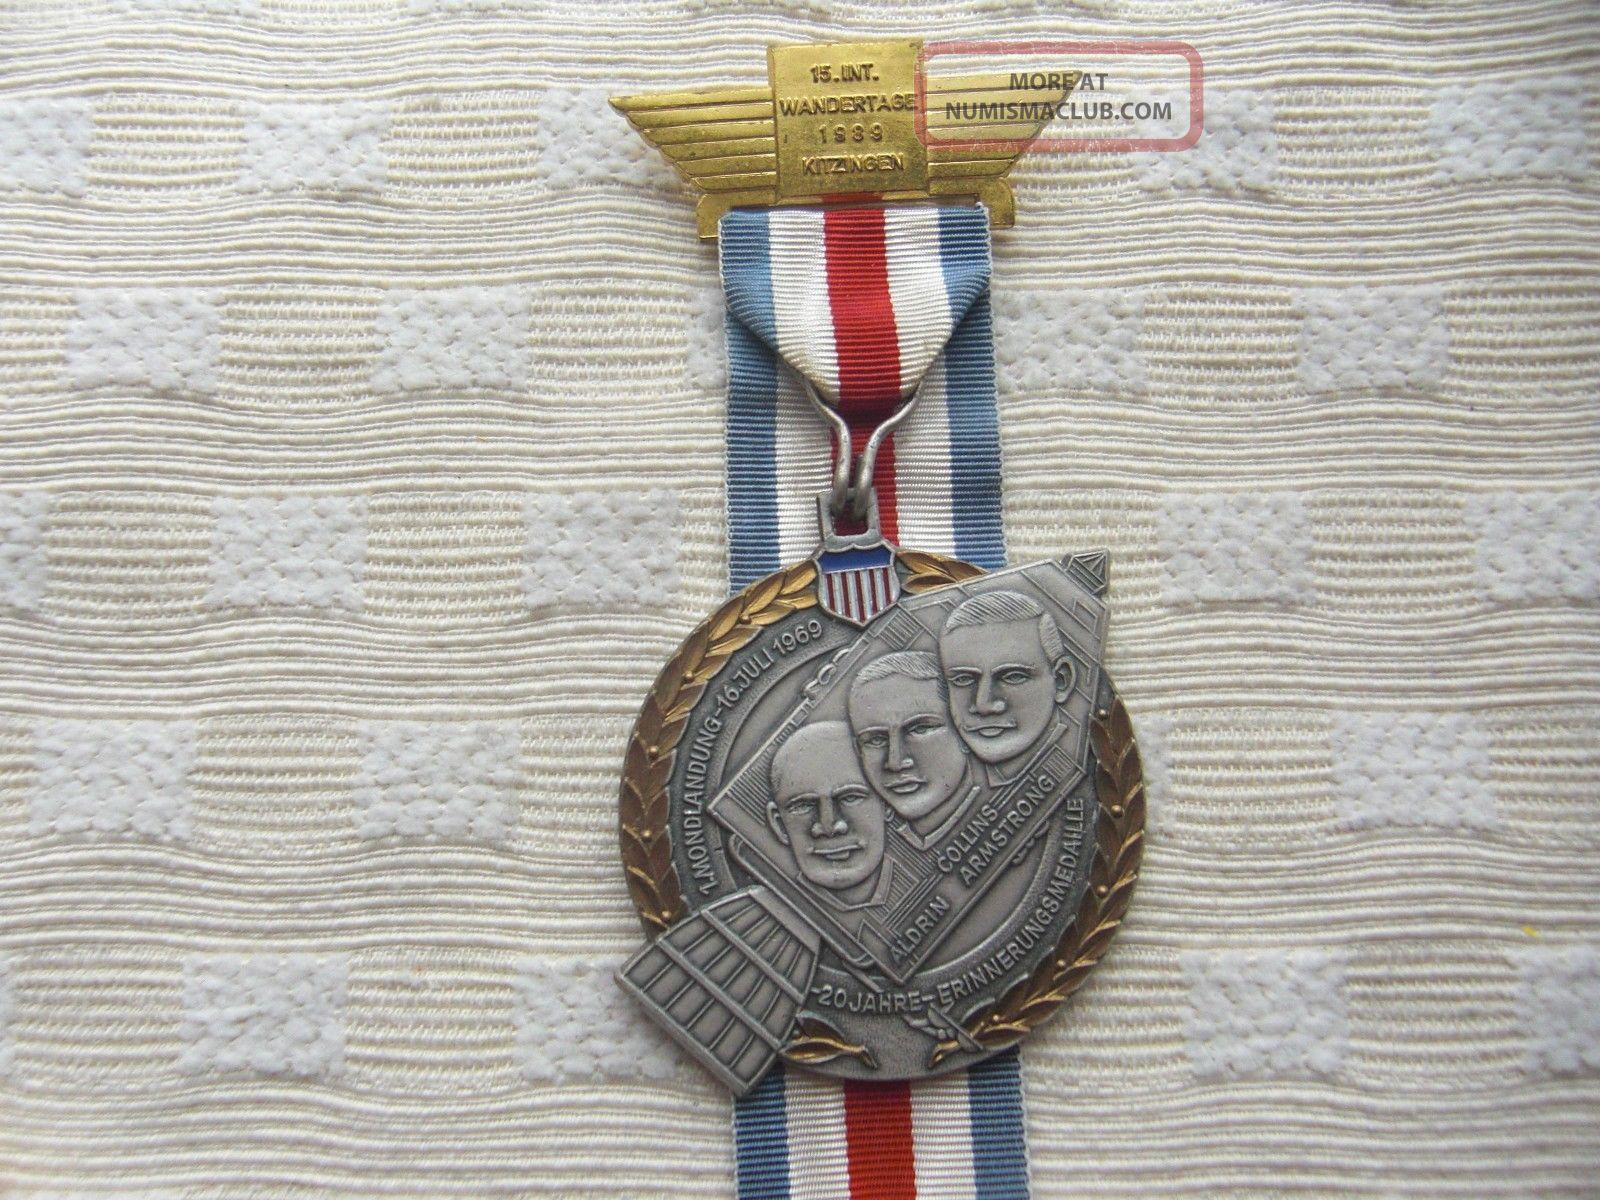 Medal First Moon Landing 1969 Collins. 20 Years Memory German